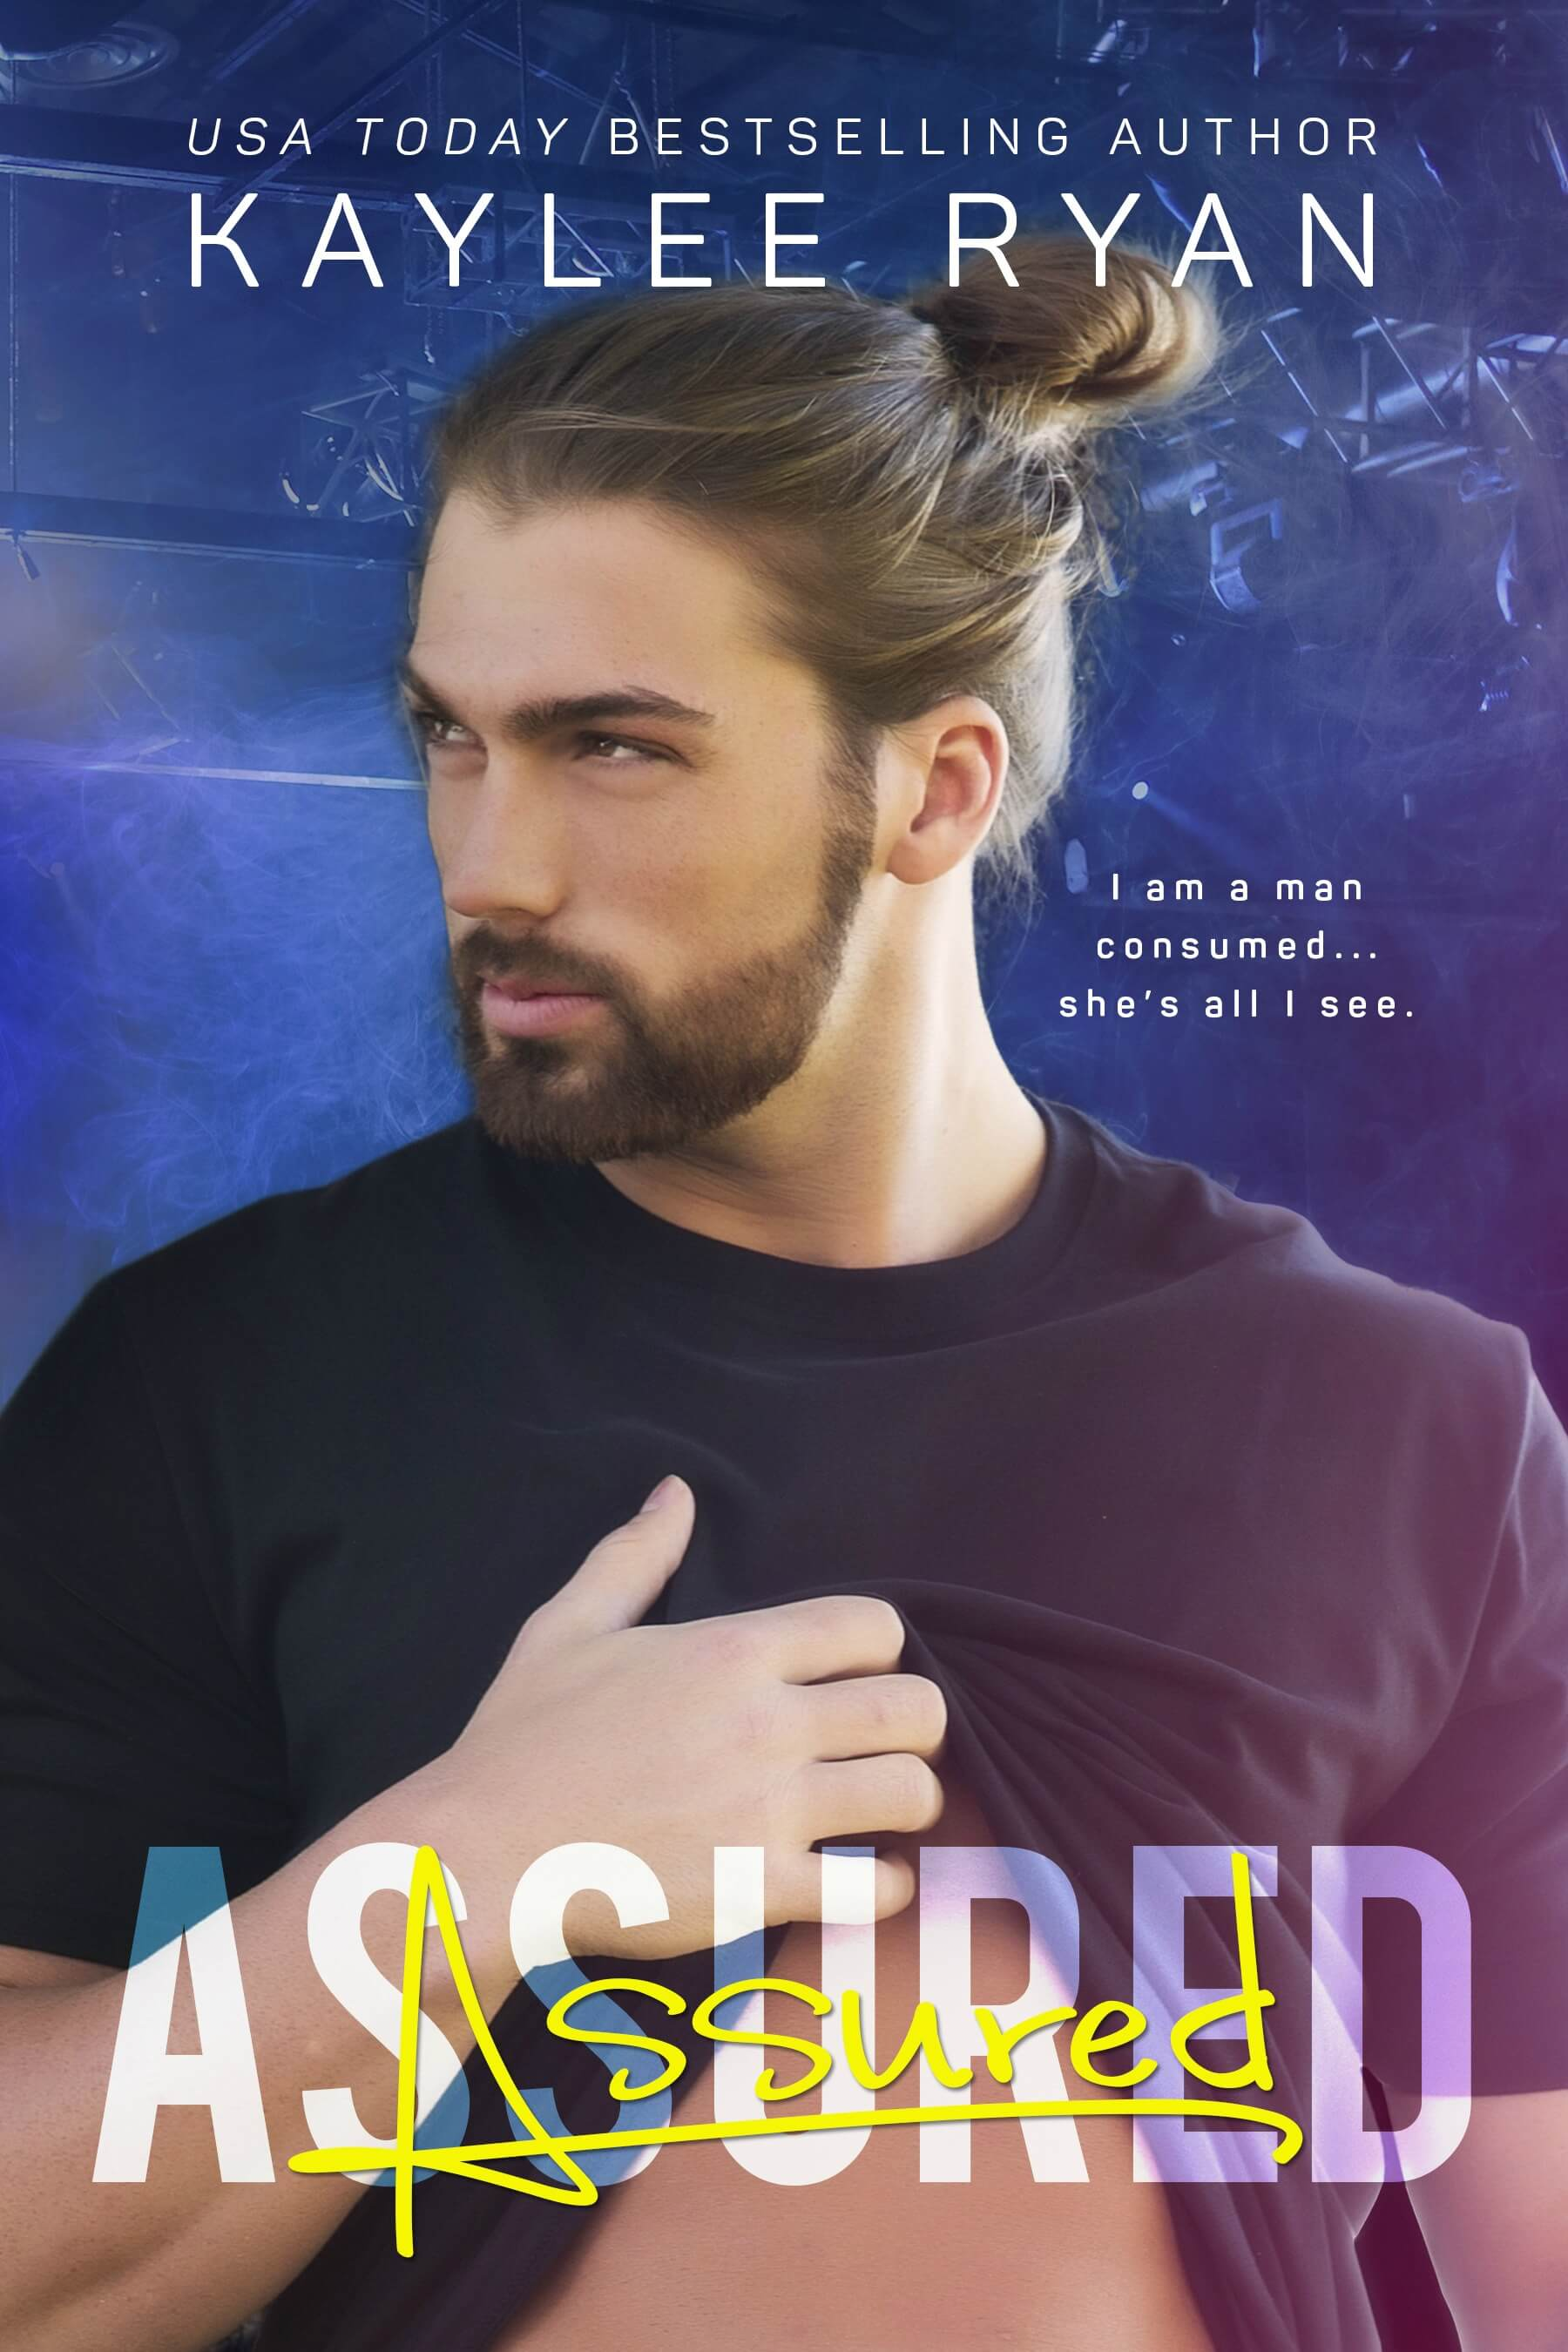 Assured by Kaylee Ryan